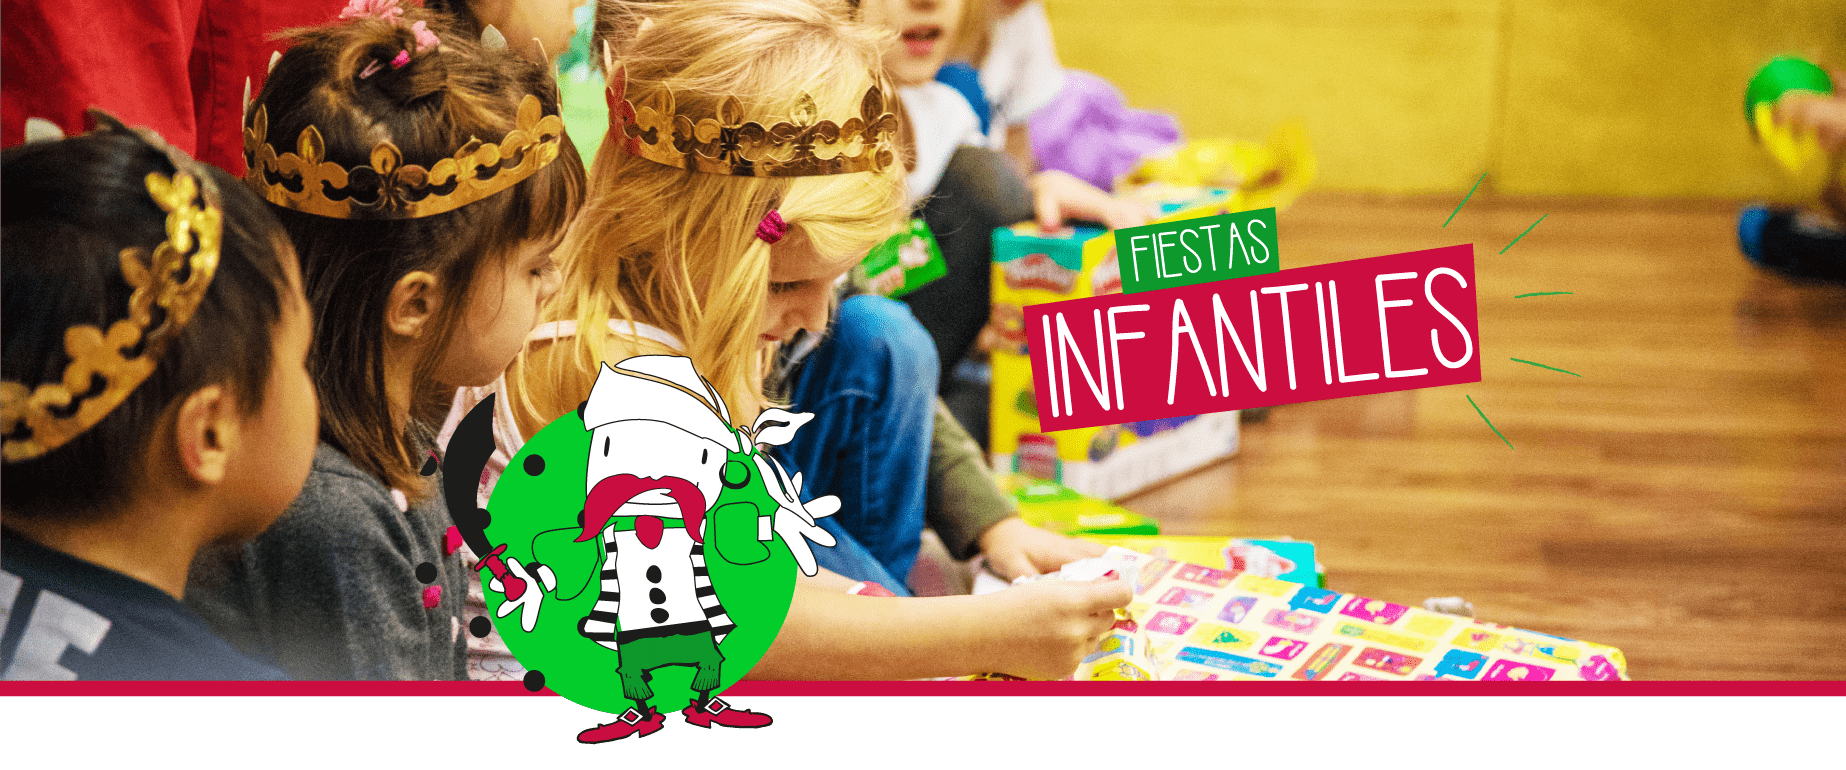 fiestas infantiles Planeta Magic Barcelona